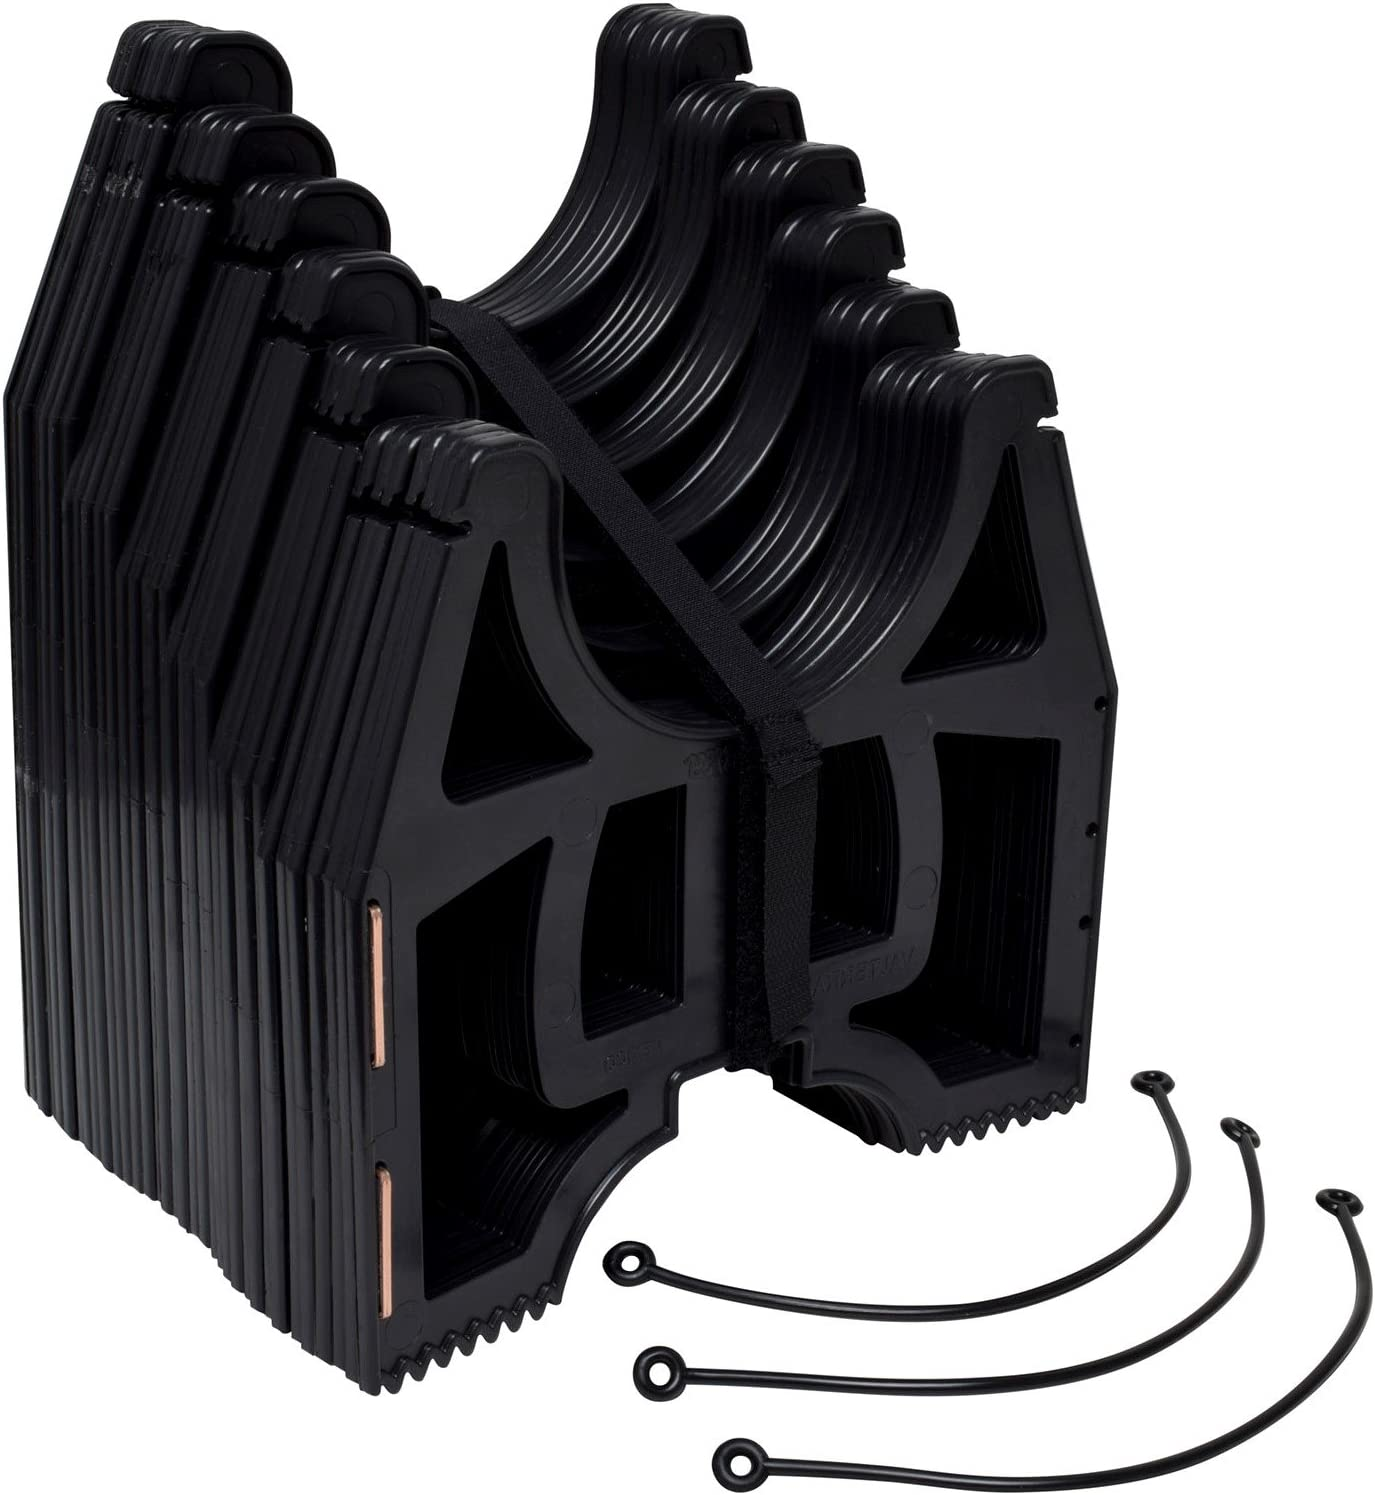 Valterra 25-Foot Slunky RV Hose Support, RV Sewer Hose Holder